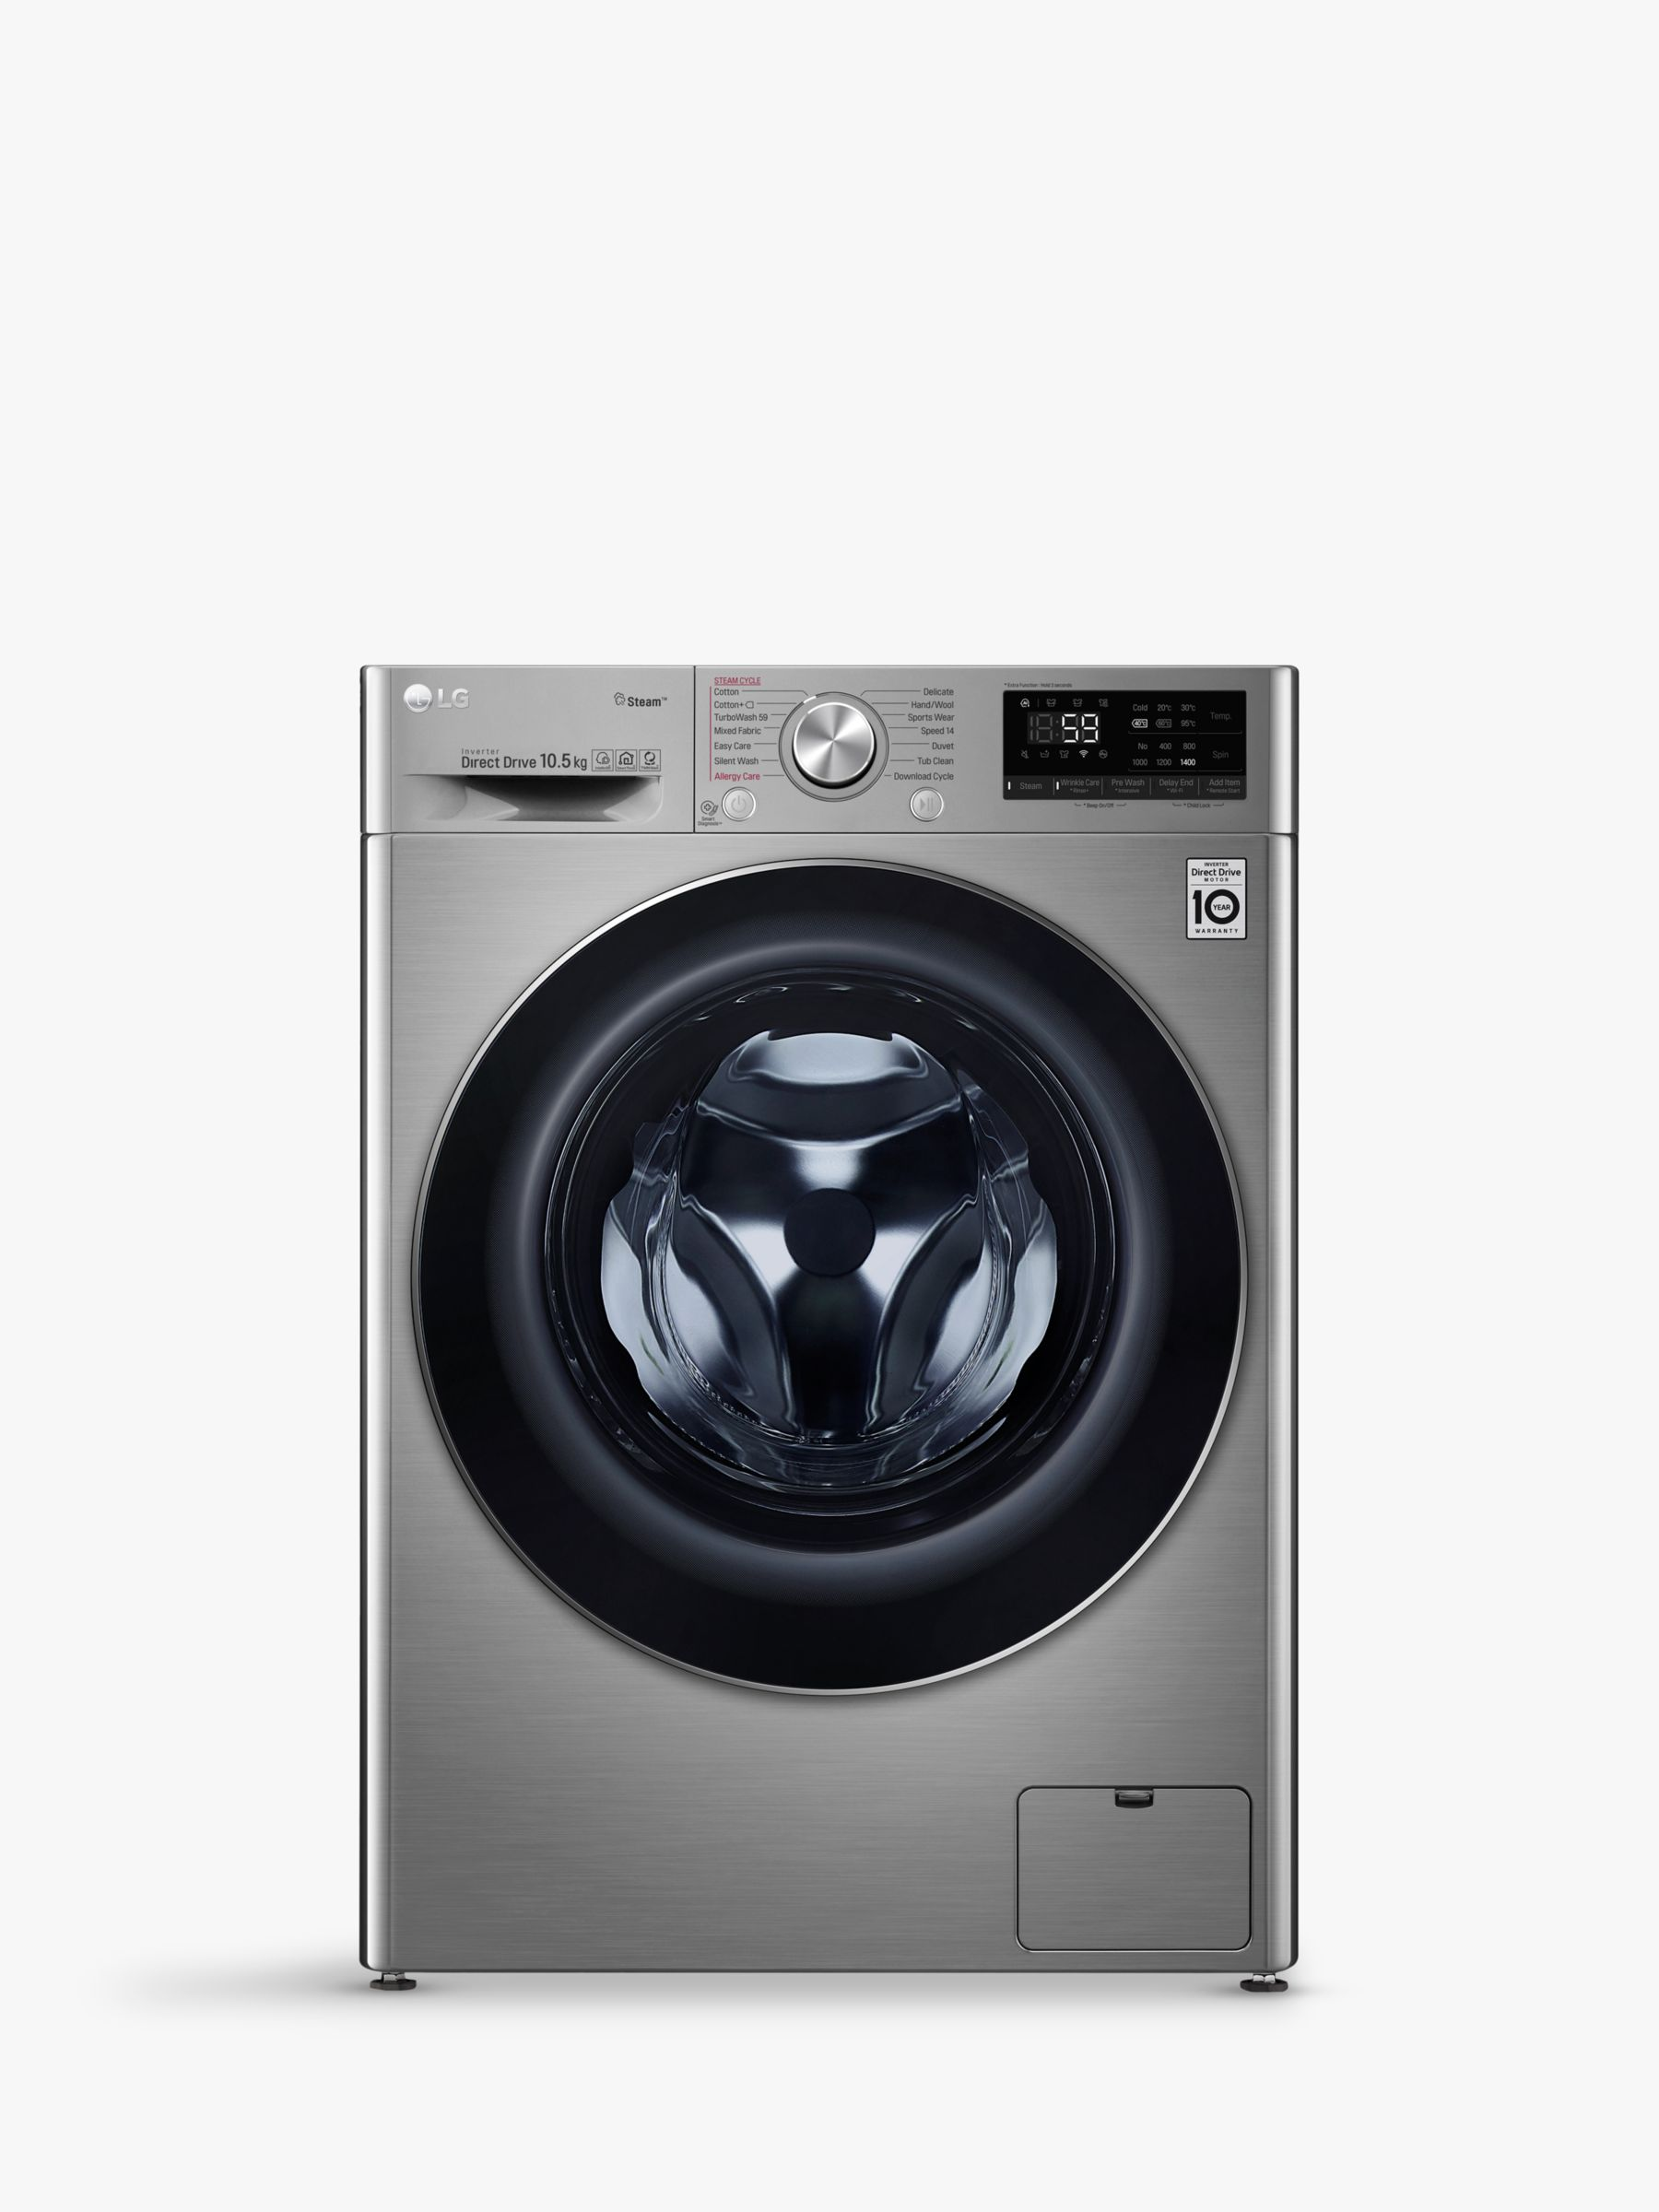 LG LG F4V710STS Freestanding Washing Machine, 10.5kg Load, A+++ Energy Rating, 1400rpm Spin, Graphite